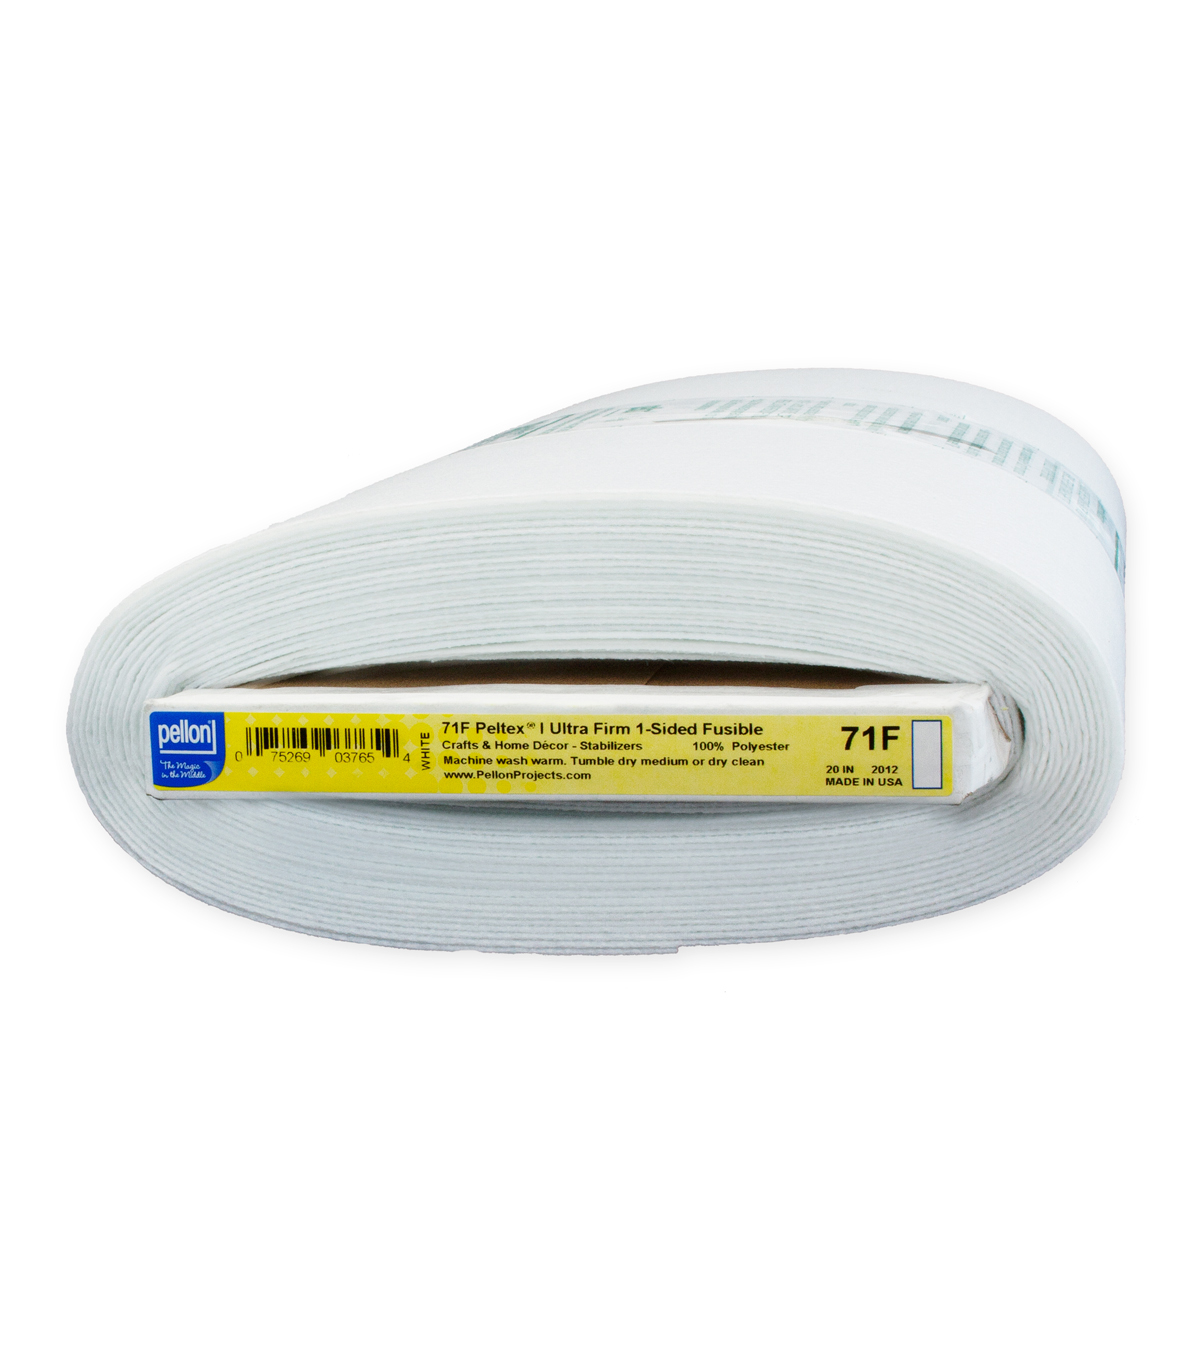 Pellon 71F Peltex One-Sided Fusible Ultra Firm Stabilizer